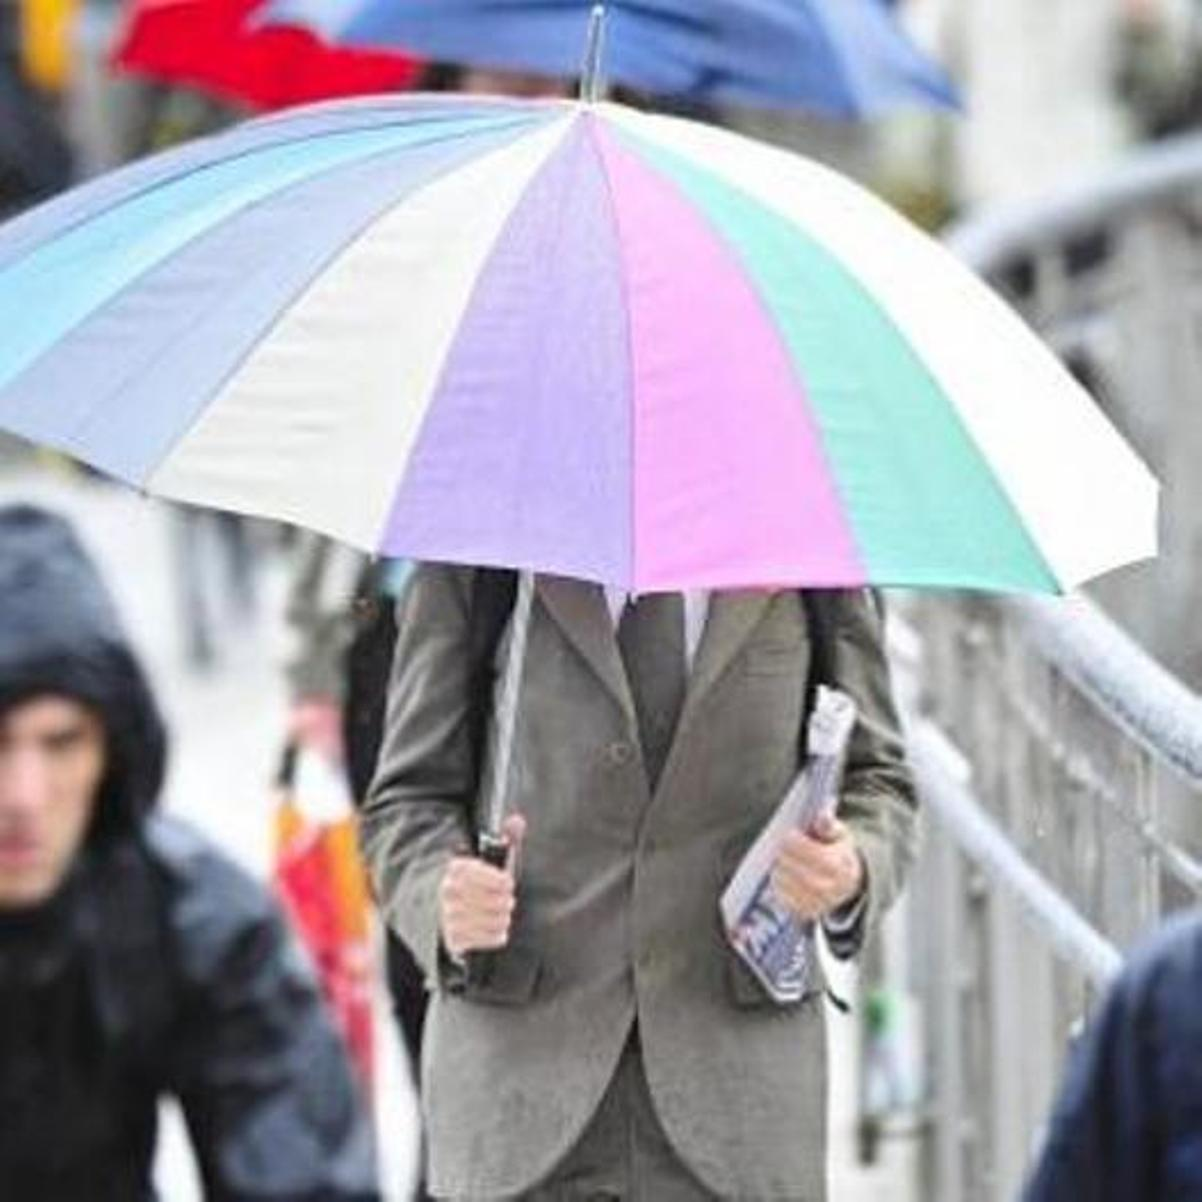 Enjoy the sun while it lasts...severe rain warning for Essex this weekend